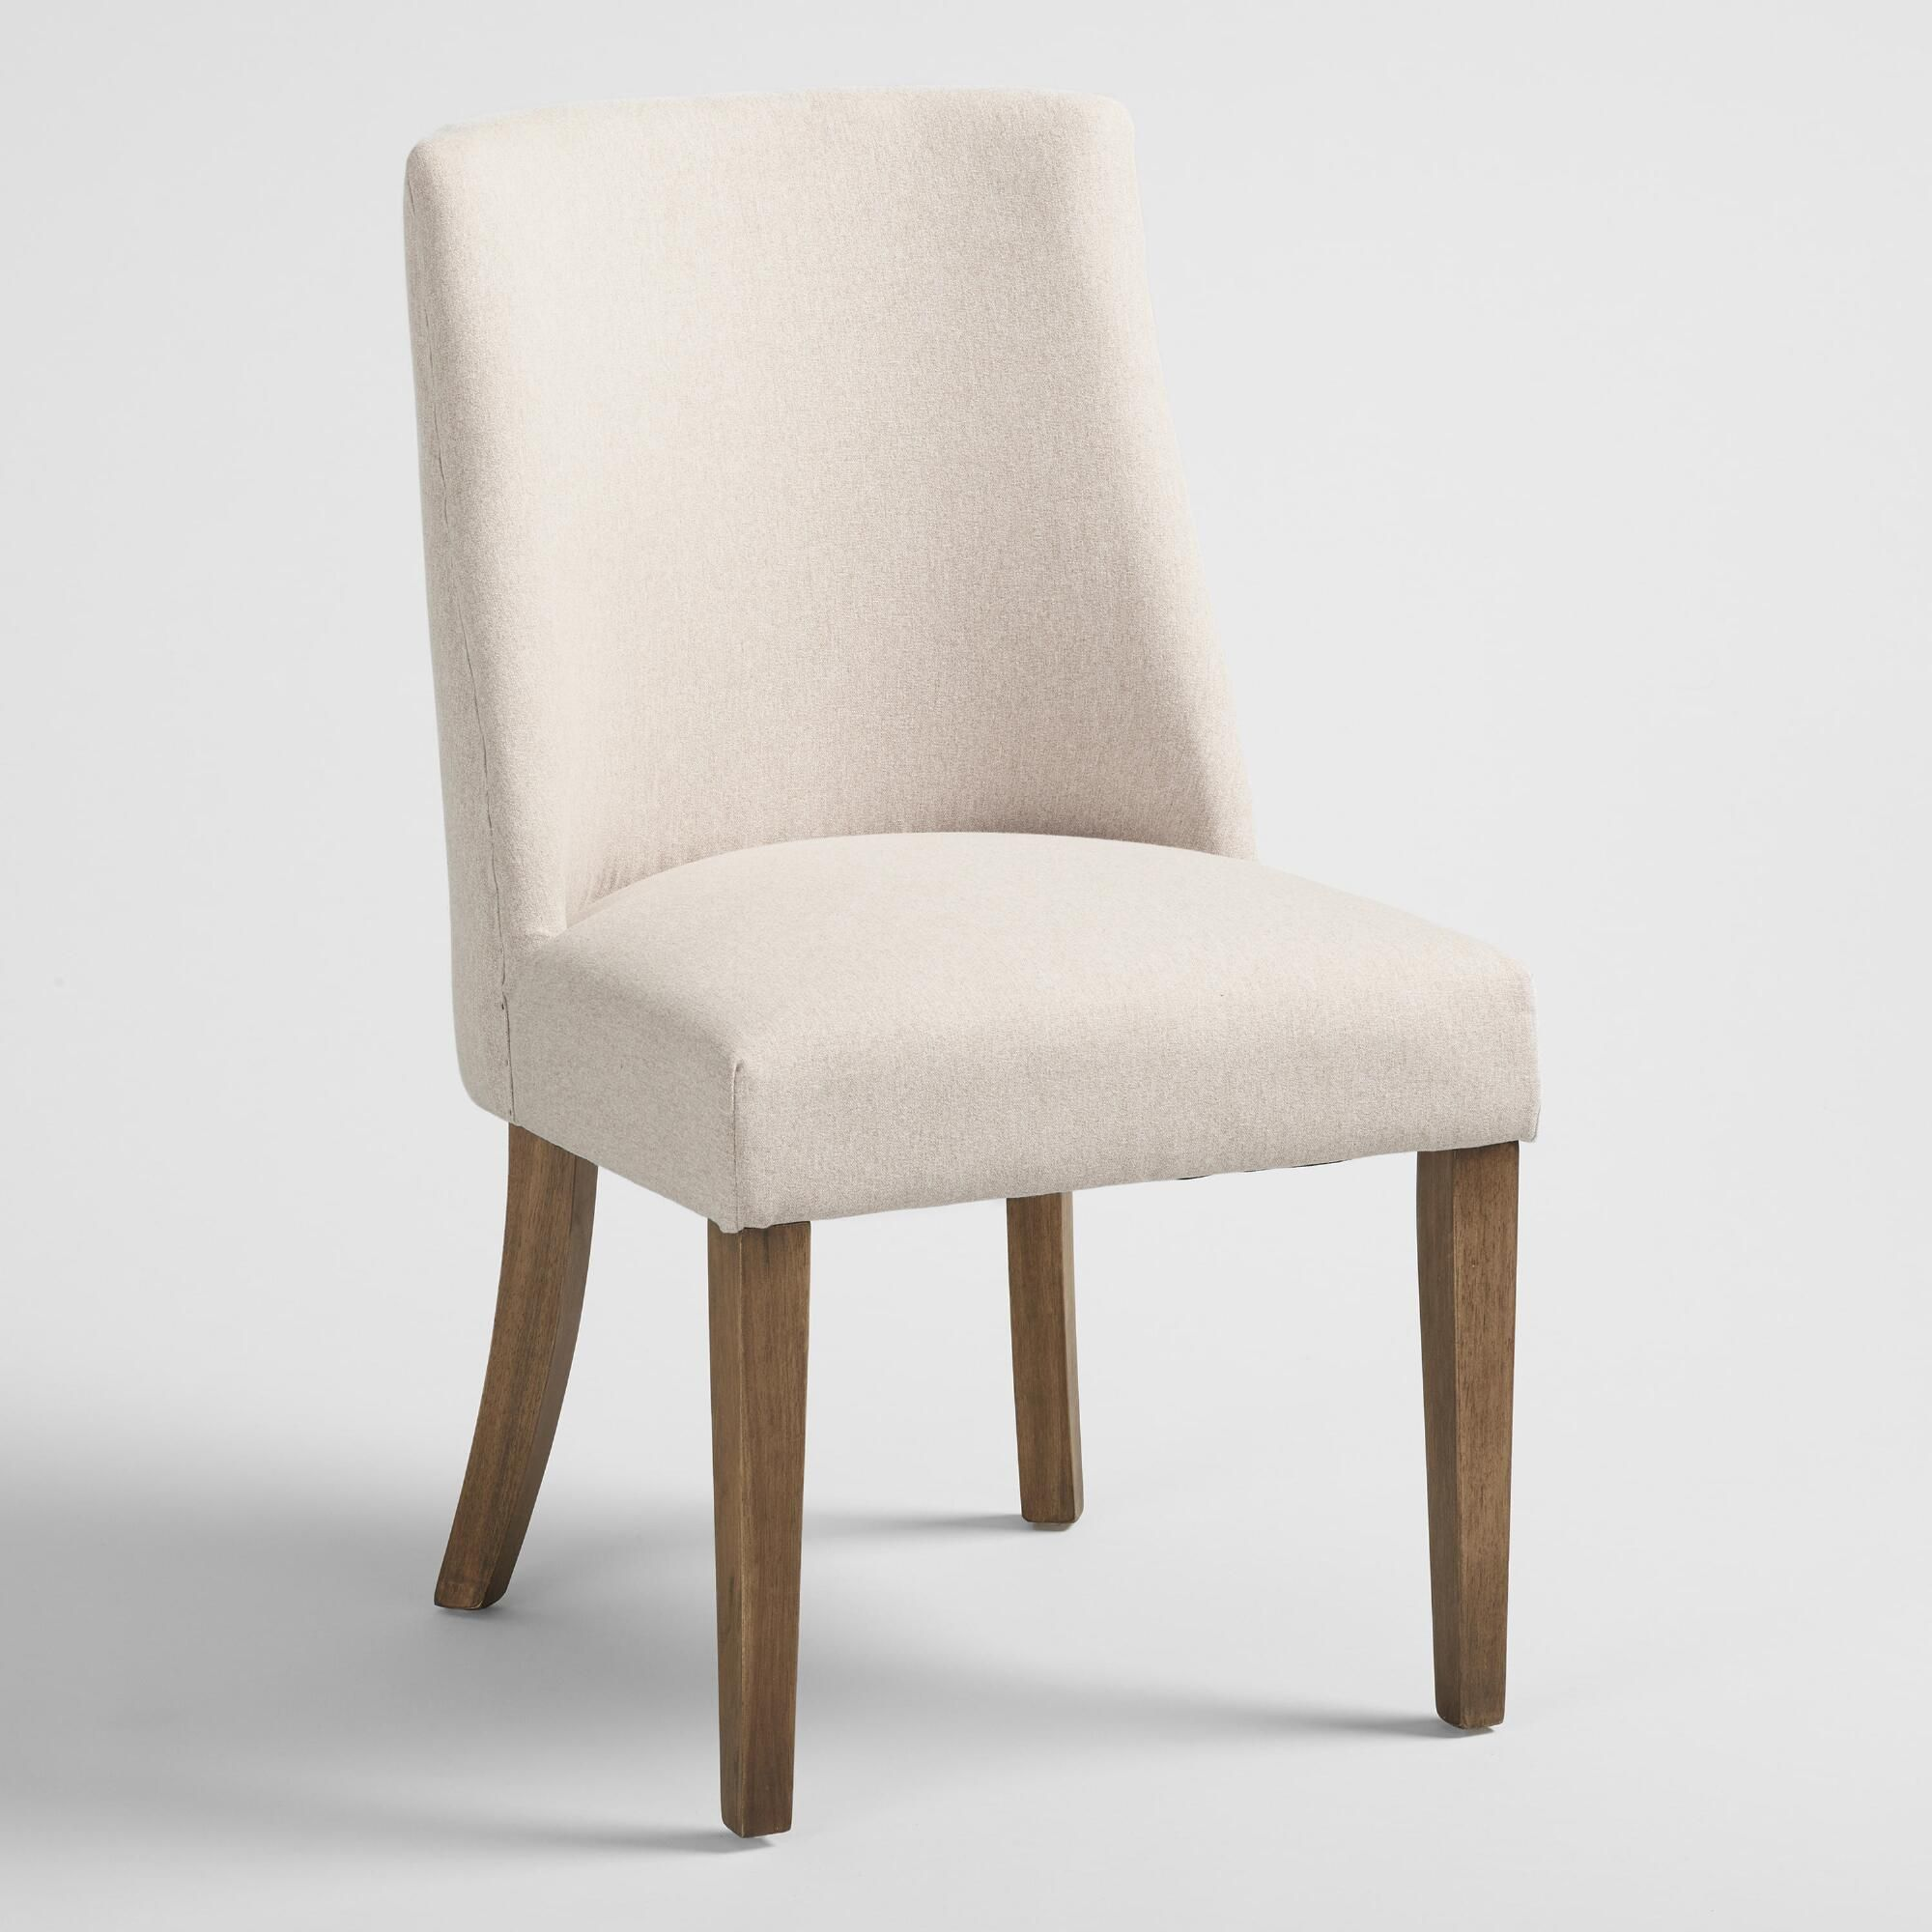 Dining Room Chairs With Arms For Sale: Natural Upholstered Lisette Dining Chair Set Of 2 By World